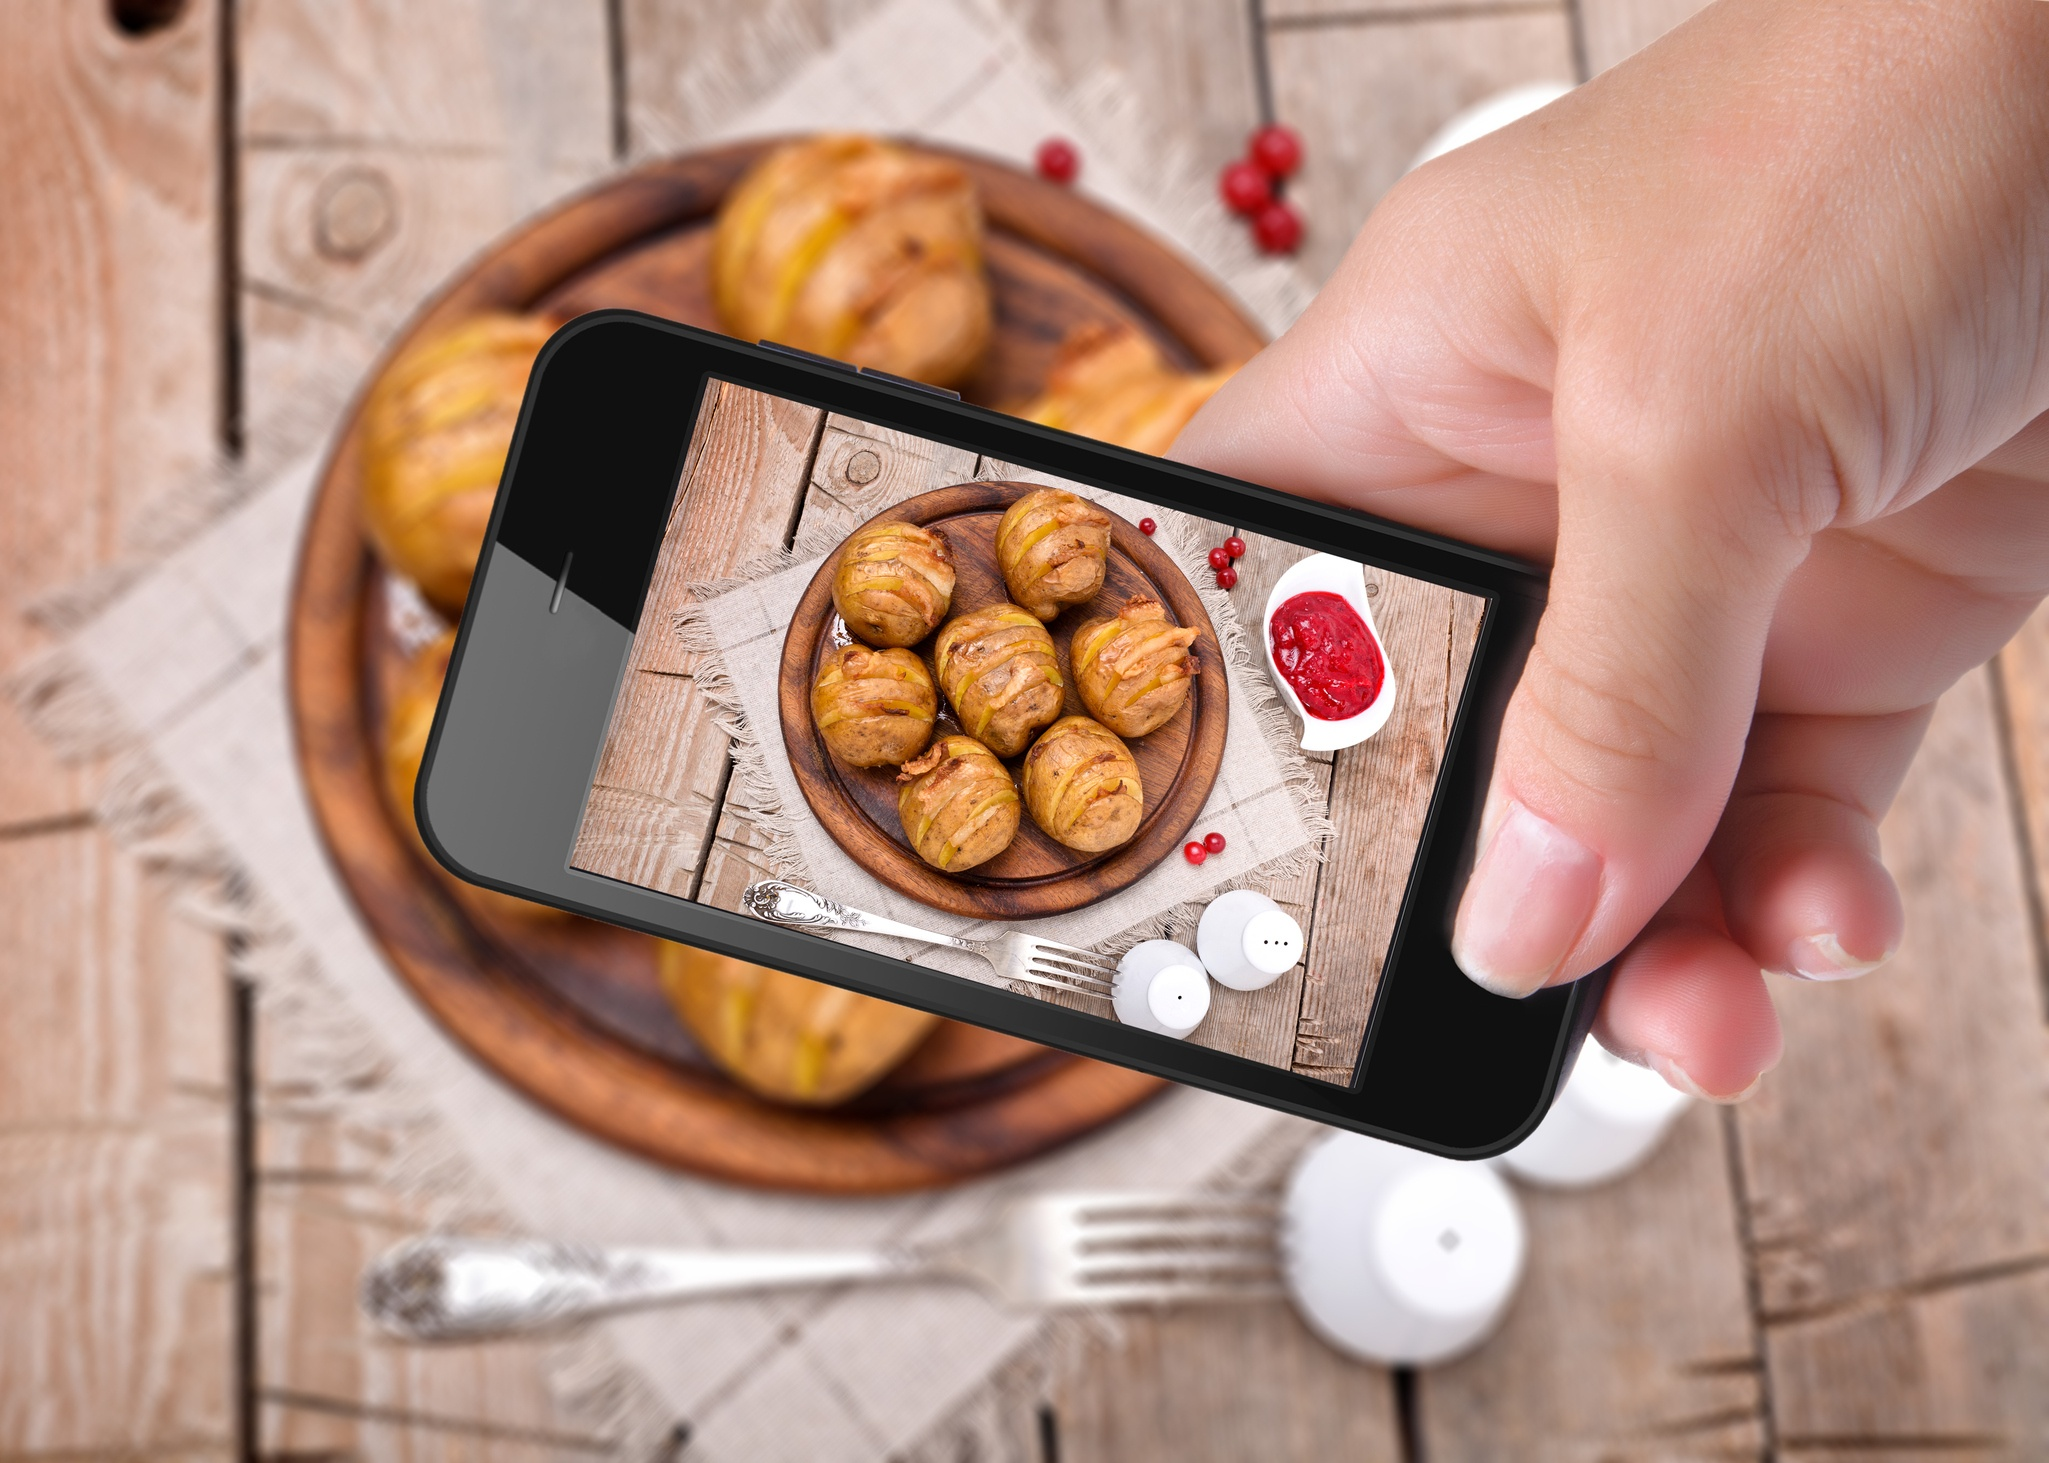 Reach More Diners With 9 Easy Instagram Restaurant Promotion Ideas